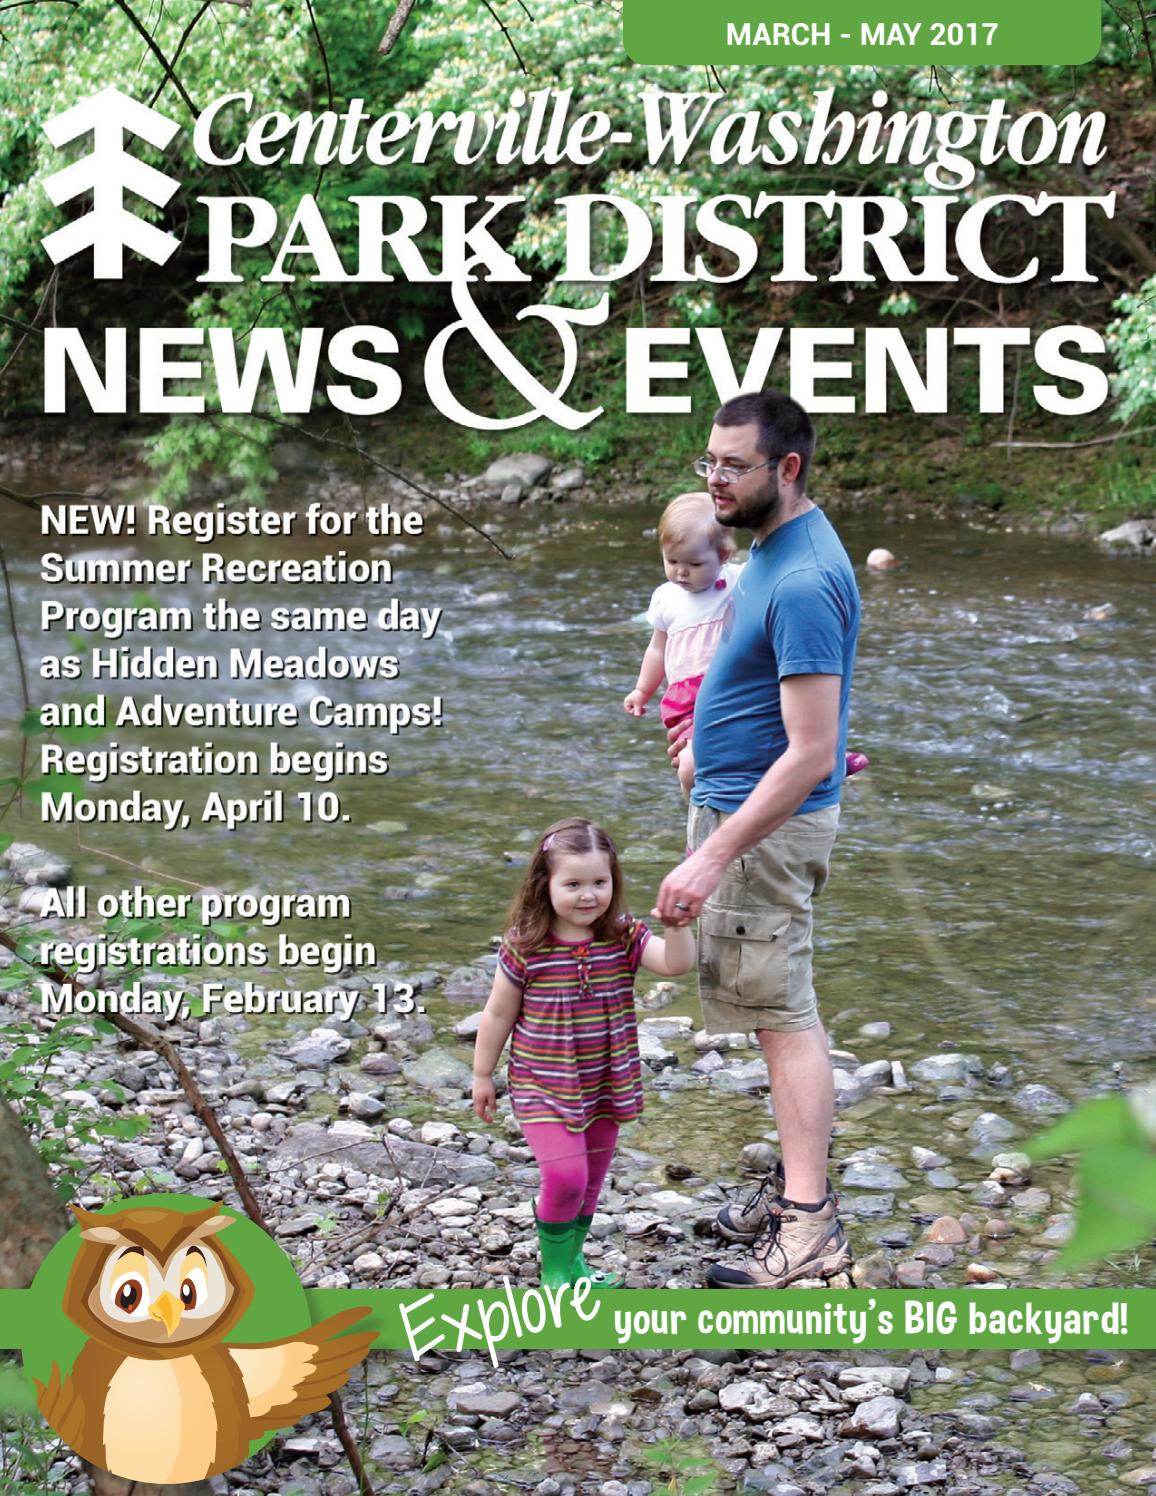 centerville washington park district spring 2017 news u0026 events by